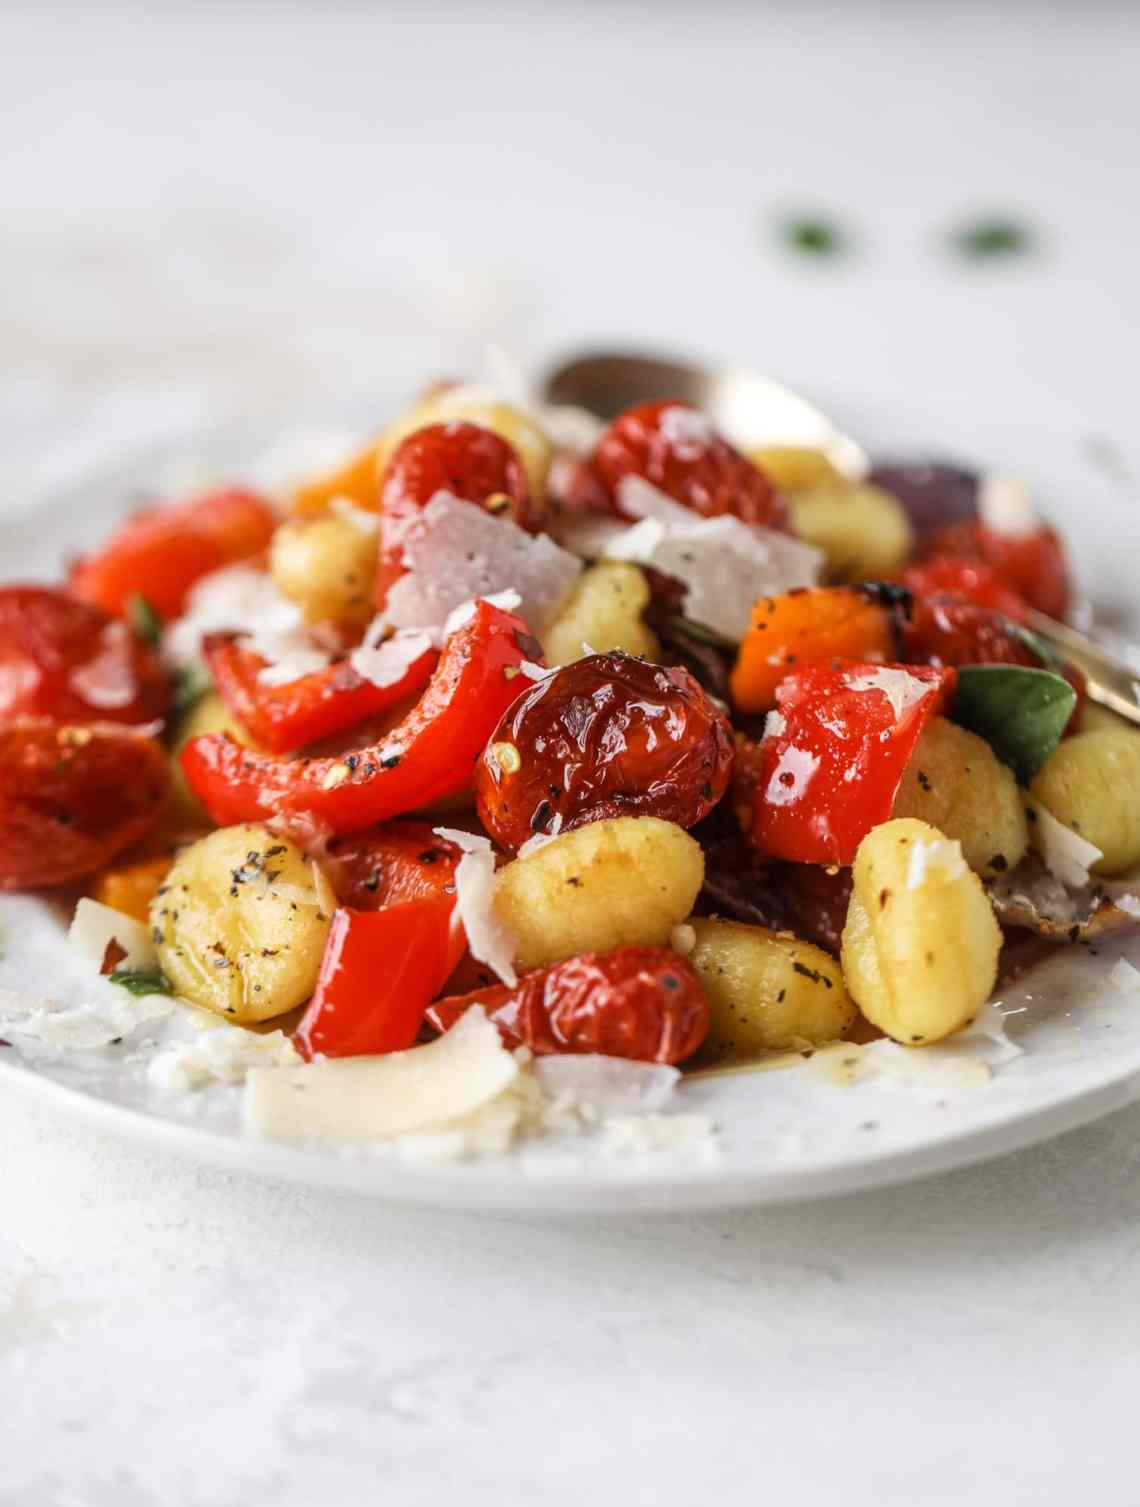 Sheet pan gnocchi is an easy meal that the whole family will love! Toasted gnocchi along with burst tomatoes and caramelized peppers makes the best dinner. I howsweeteats.com #sheetpan #gnocchi